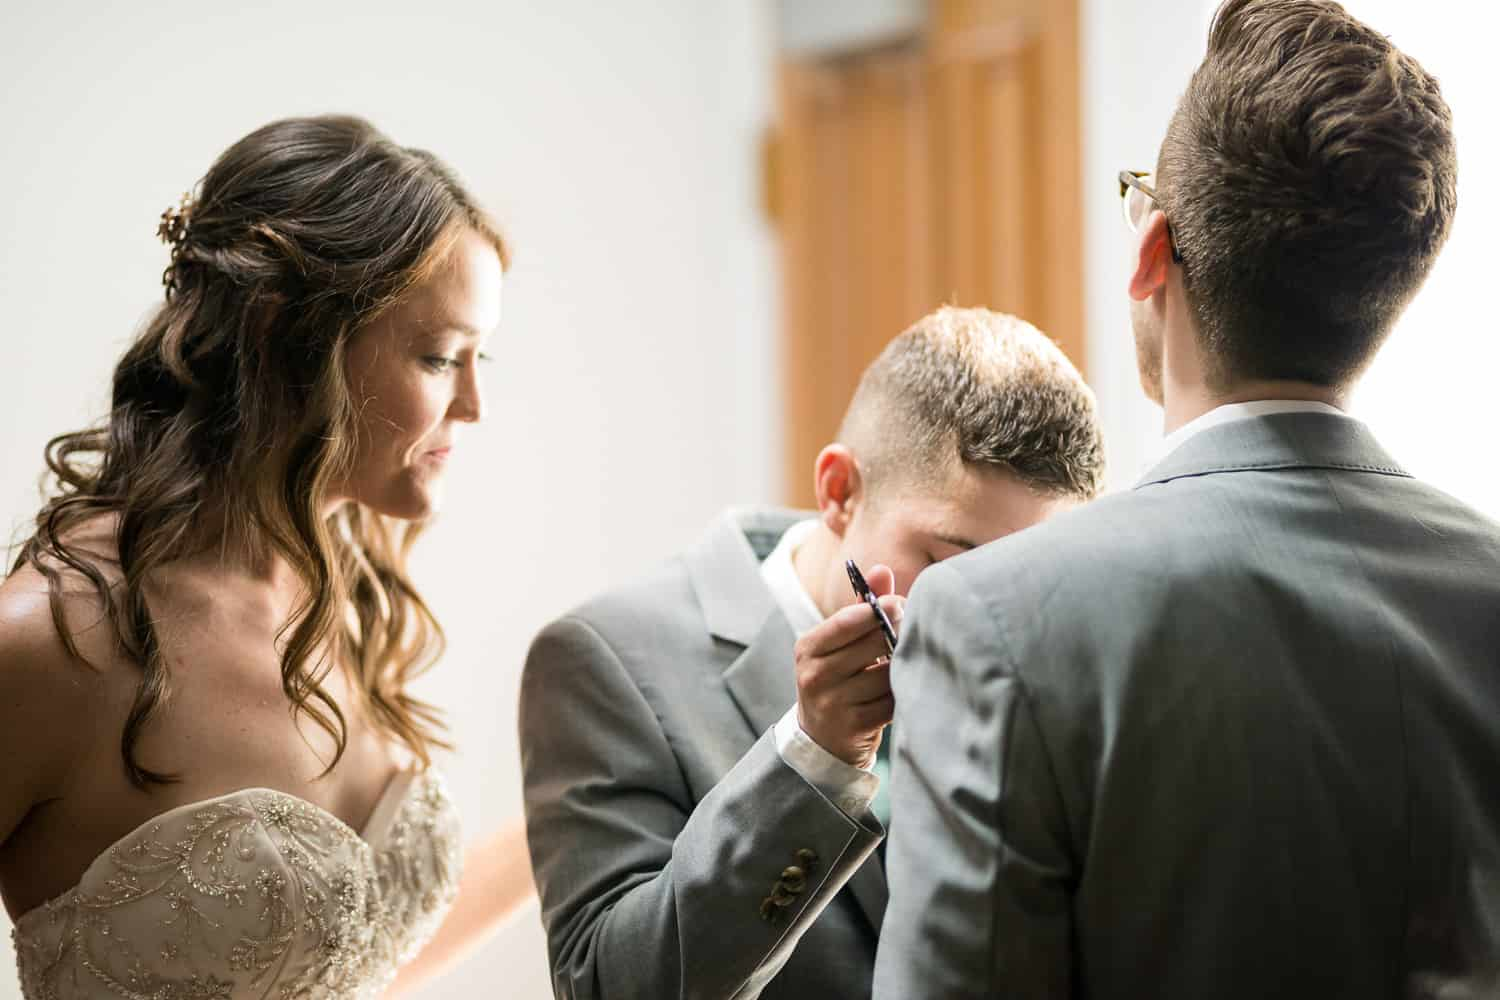 a groomsman cuts open a pocket on his suite.